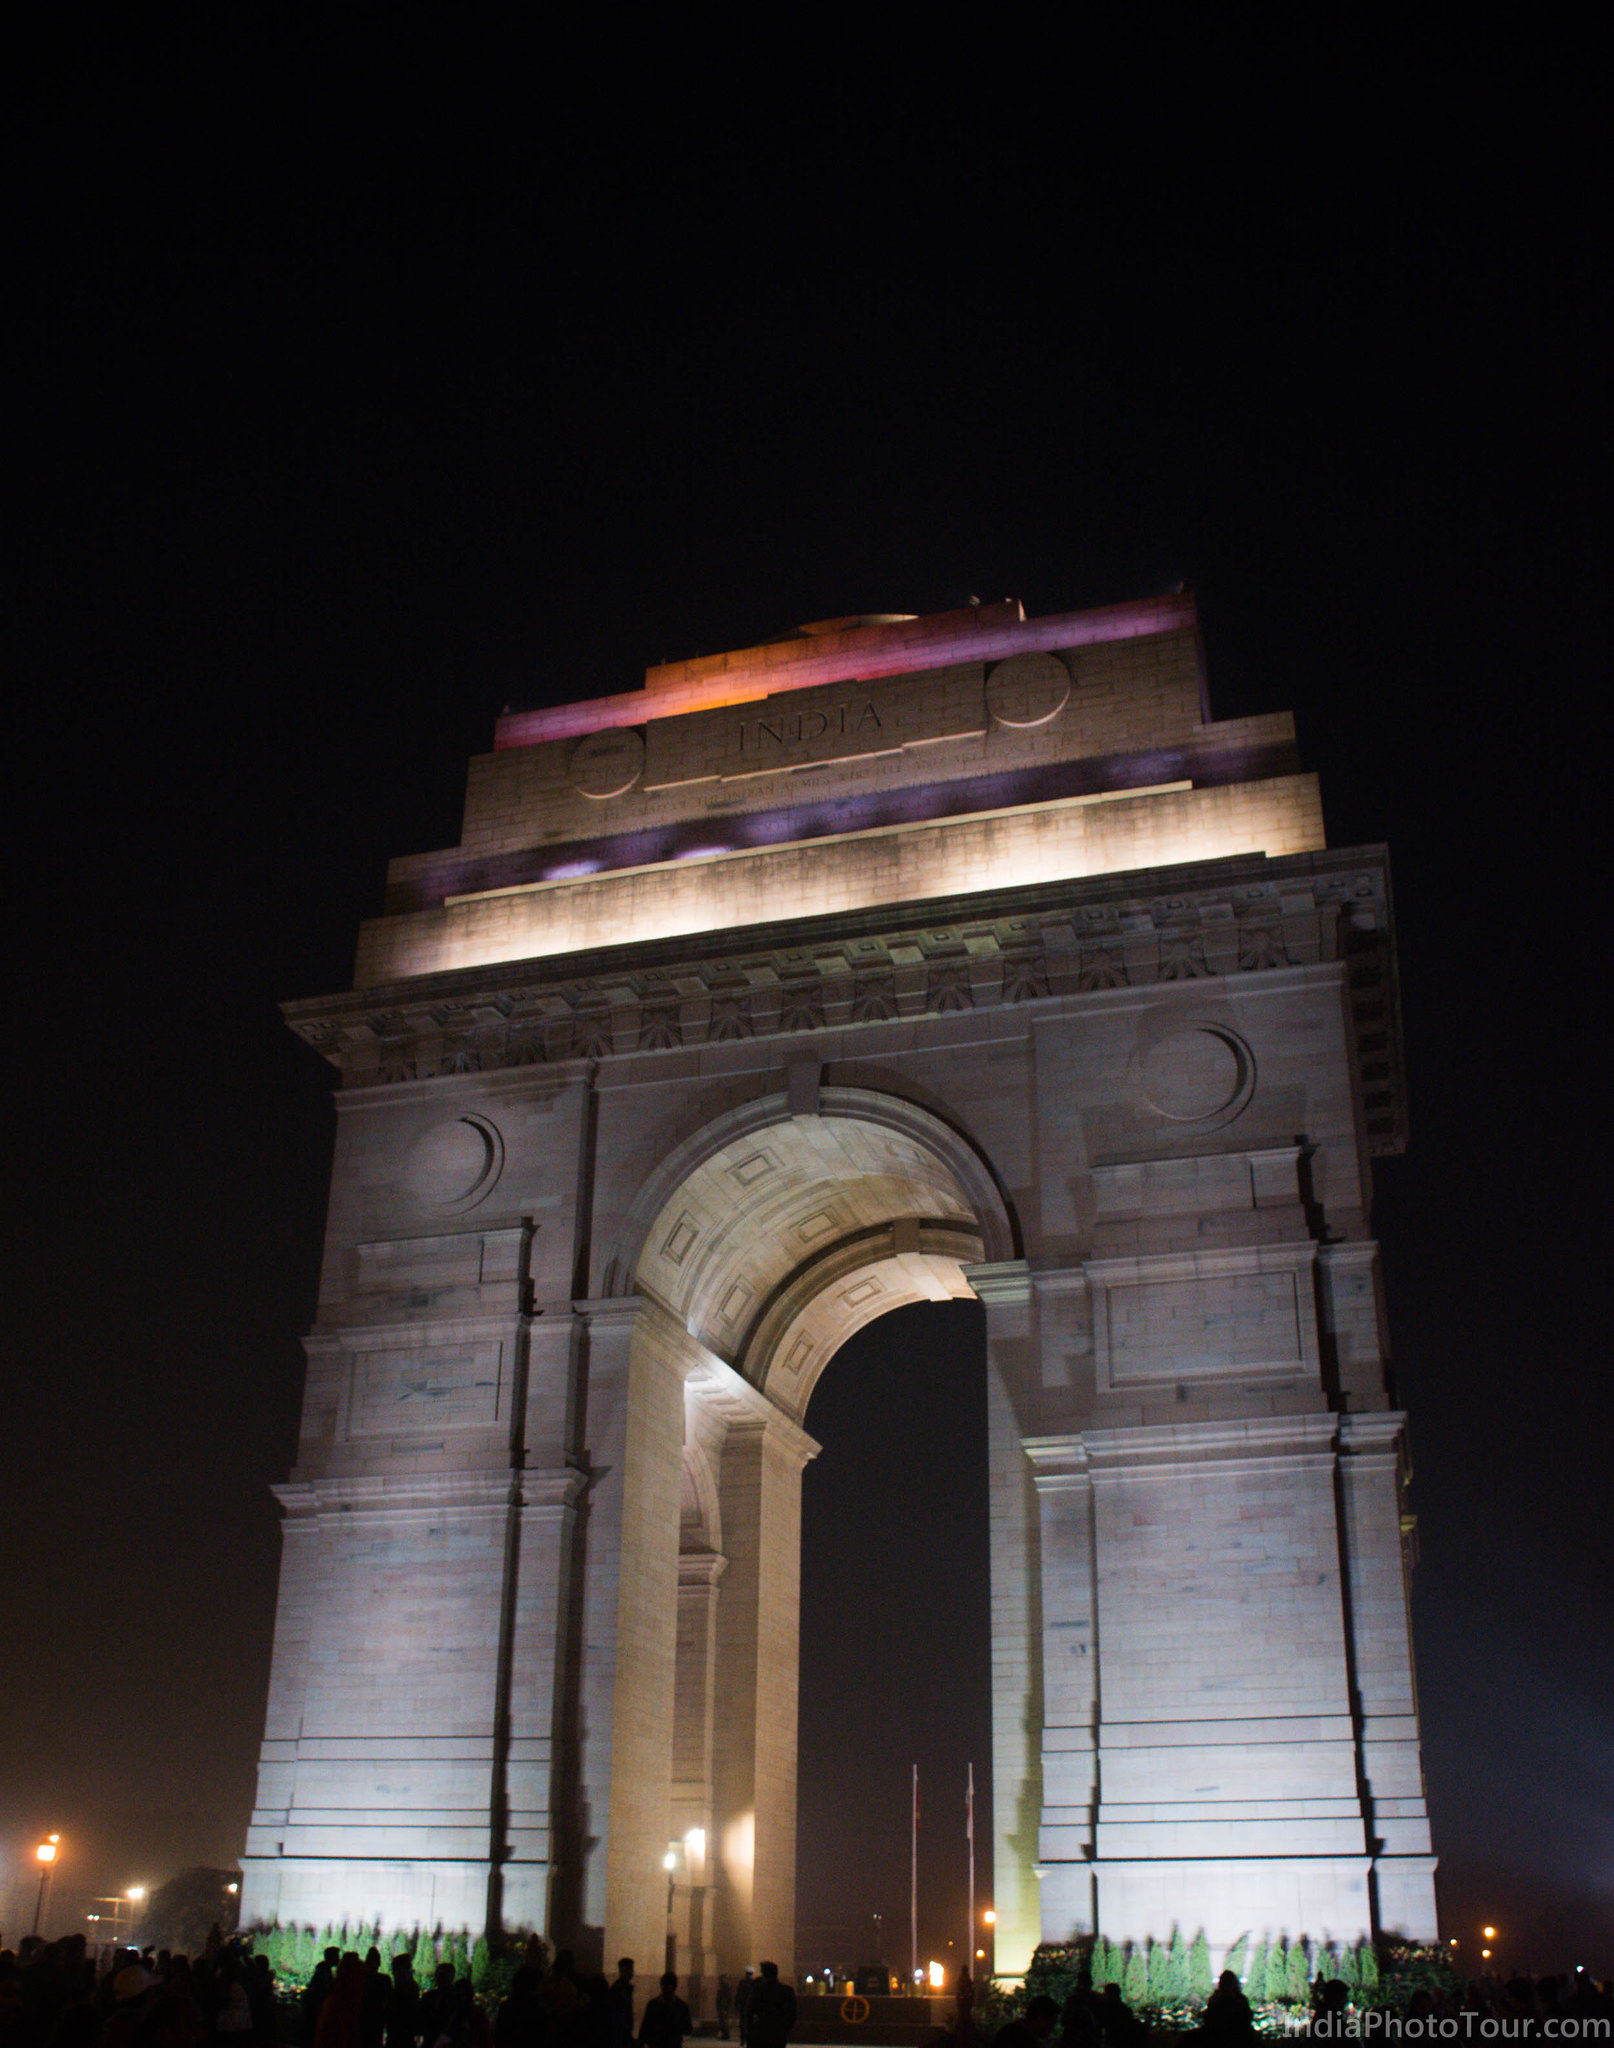 Ending the tour at India Gate in evening